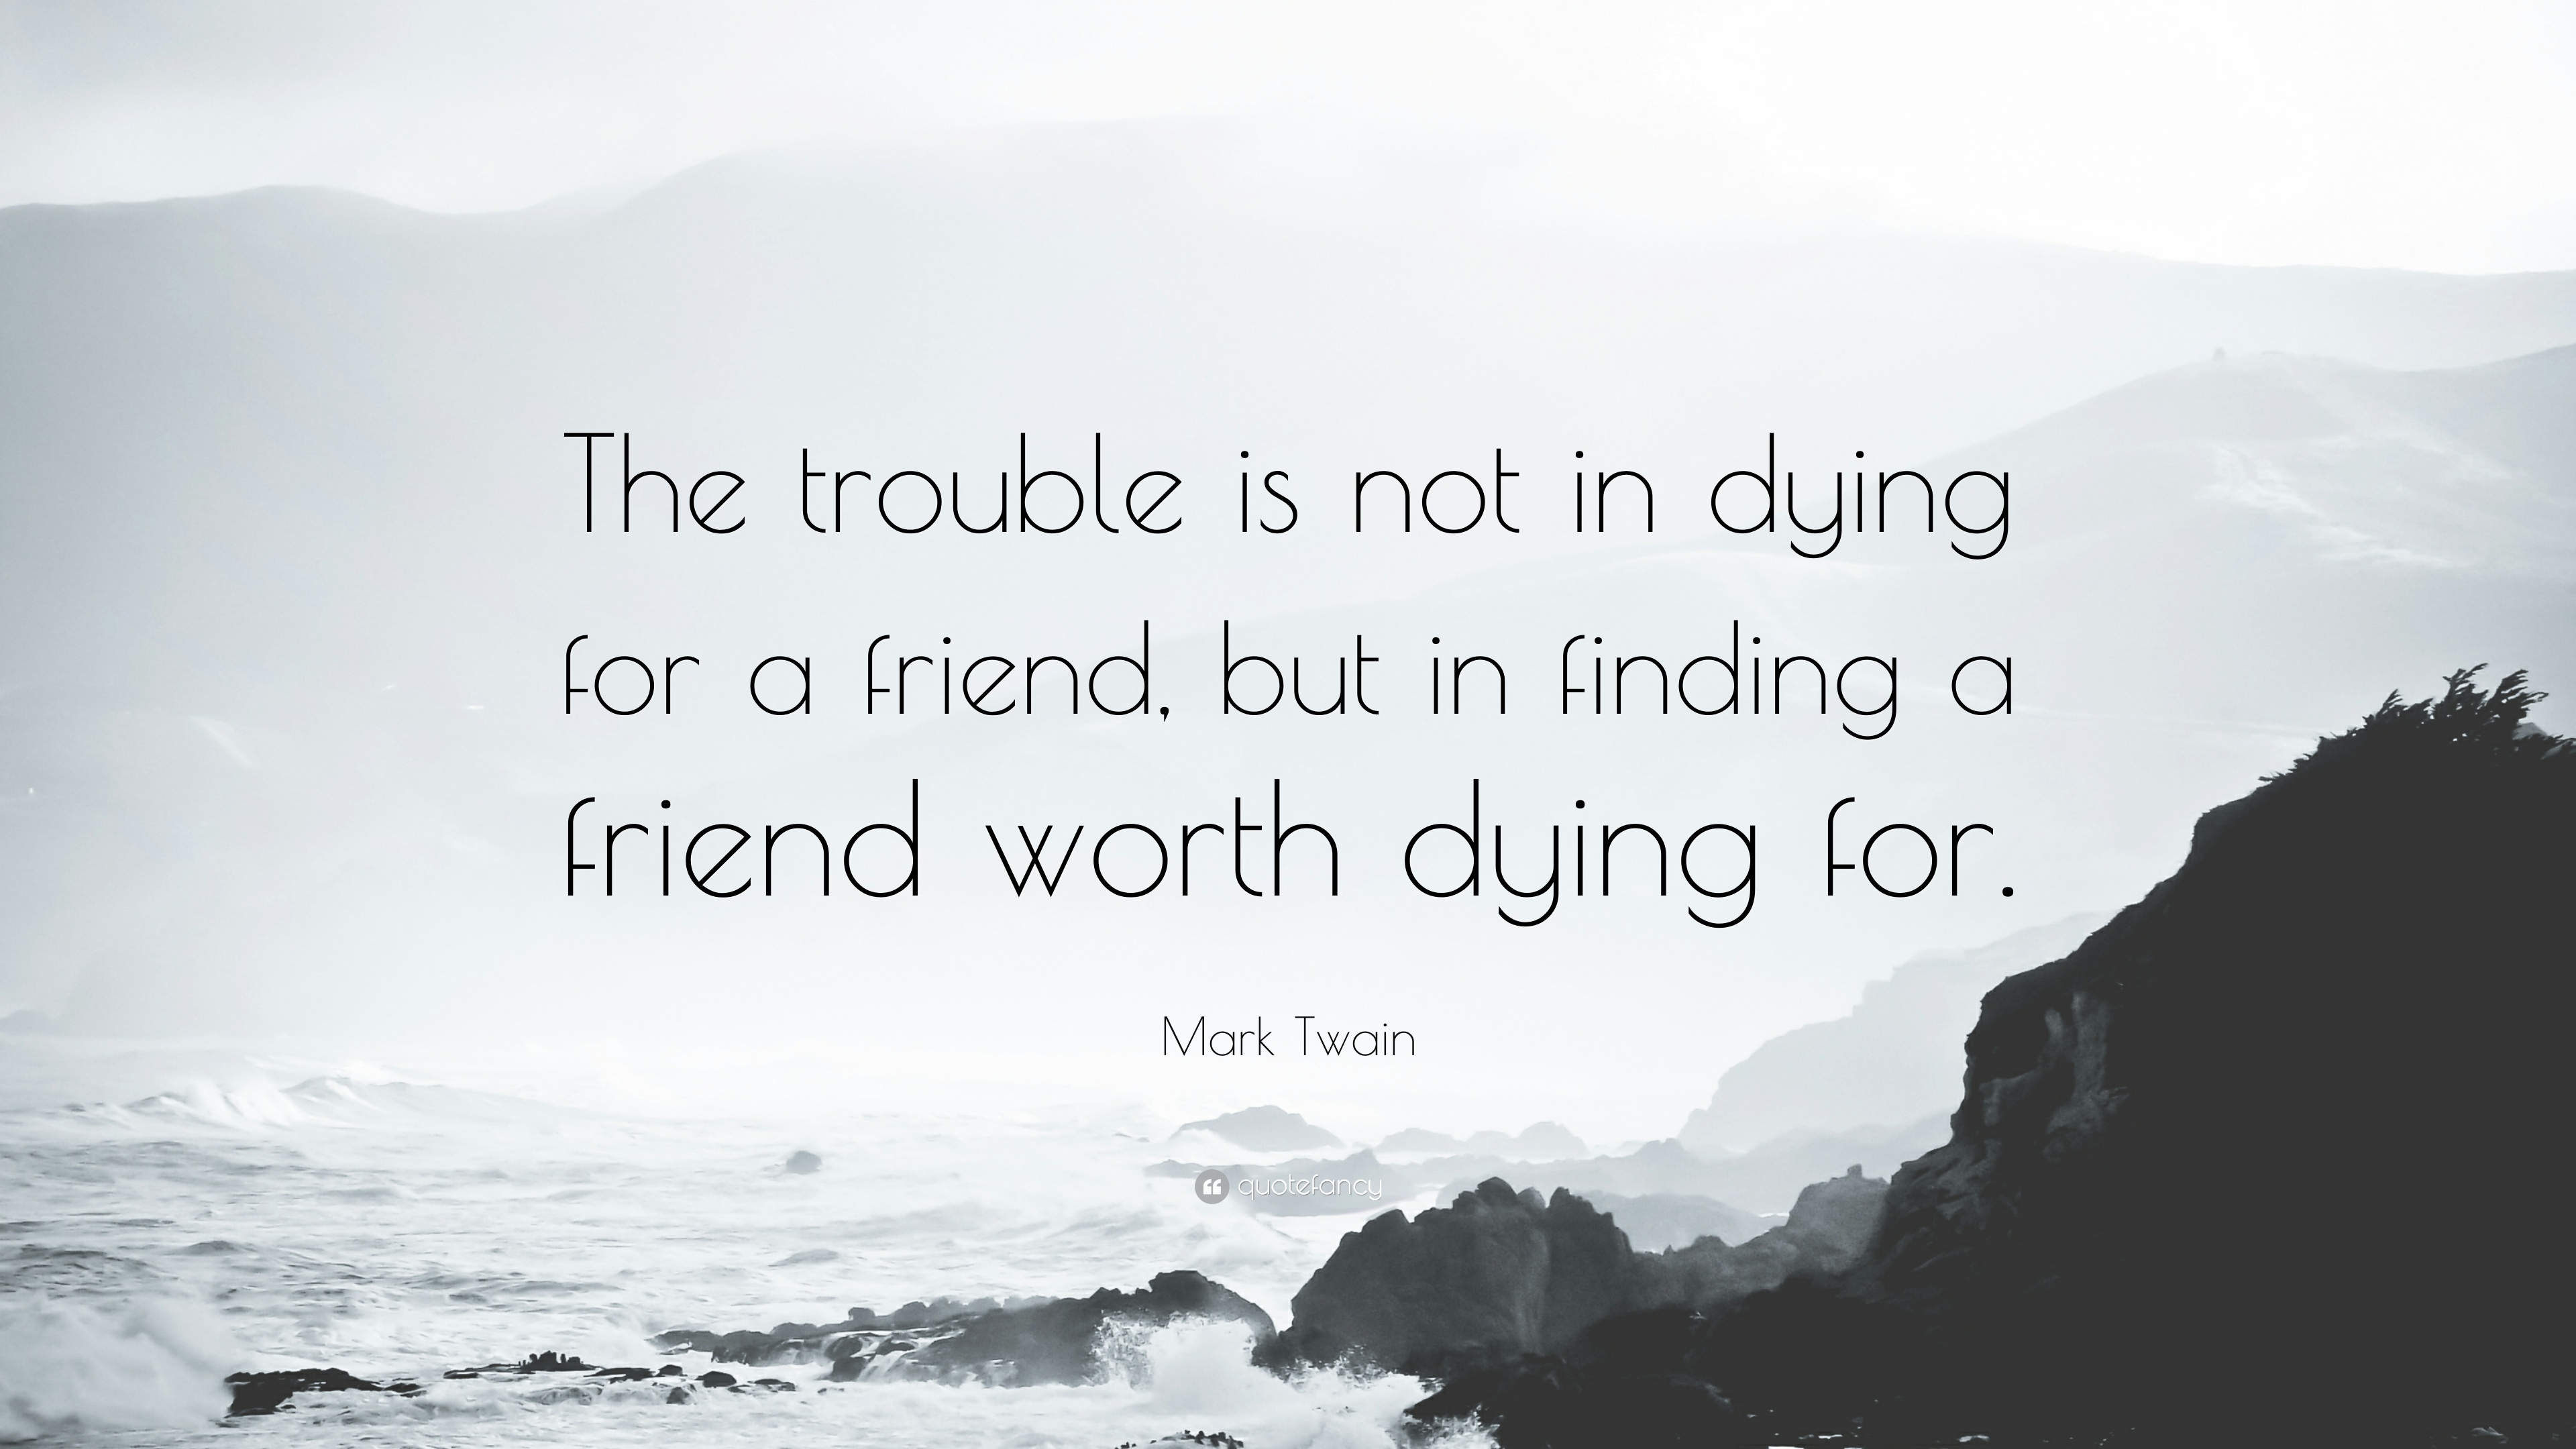 Quotes About Friendship Pictures Friendship Quotes 21 Wallpapers  Quotefancy